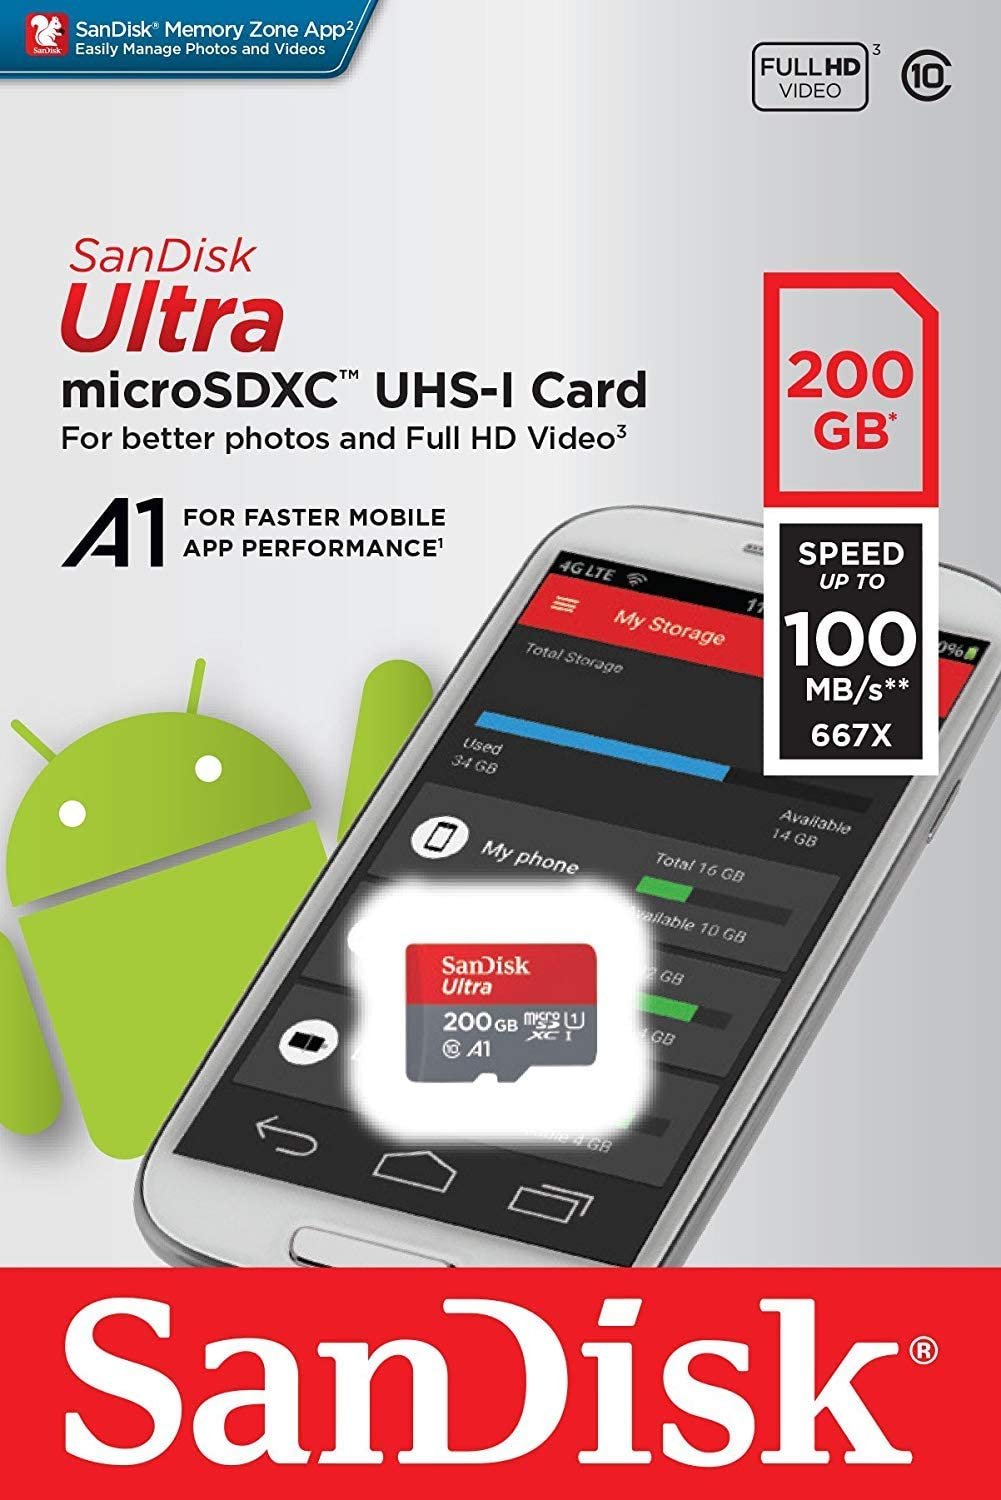 SanDisk Ultra 200GB MicroSDXC Verified for Spice Mobile X-Life 451Q by SanFlash 100MBs A1 U1 C10 Works with SanDisk